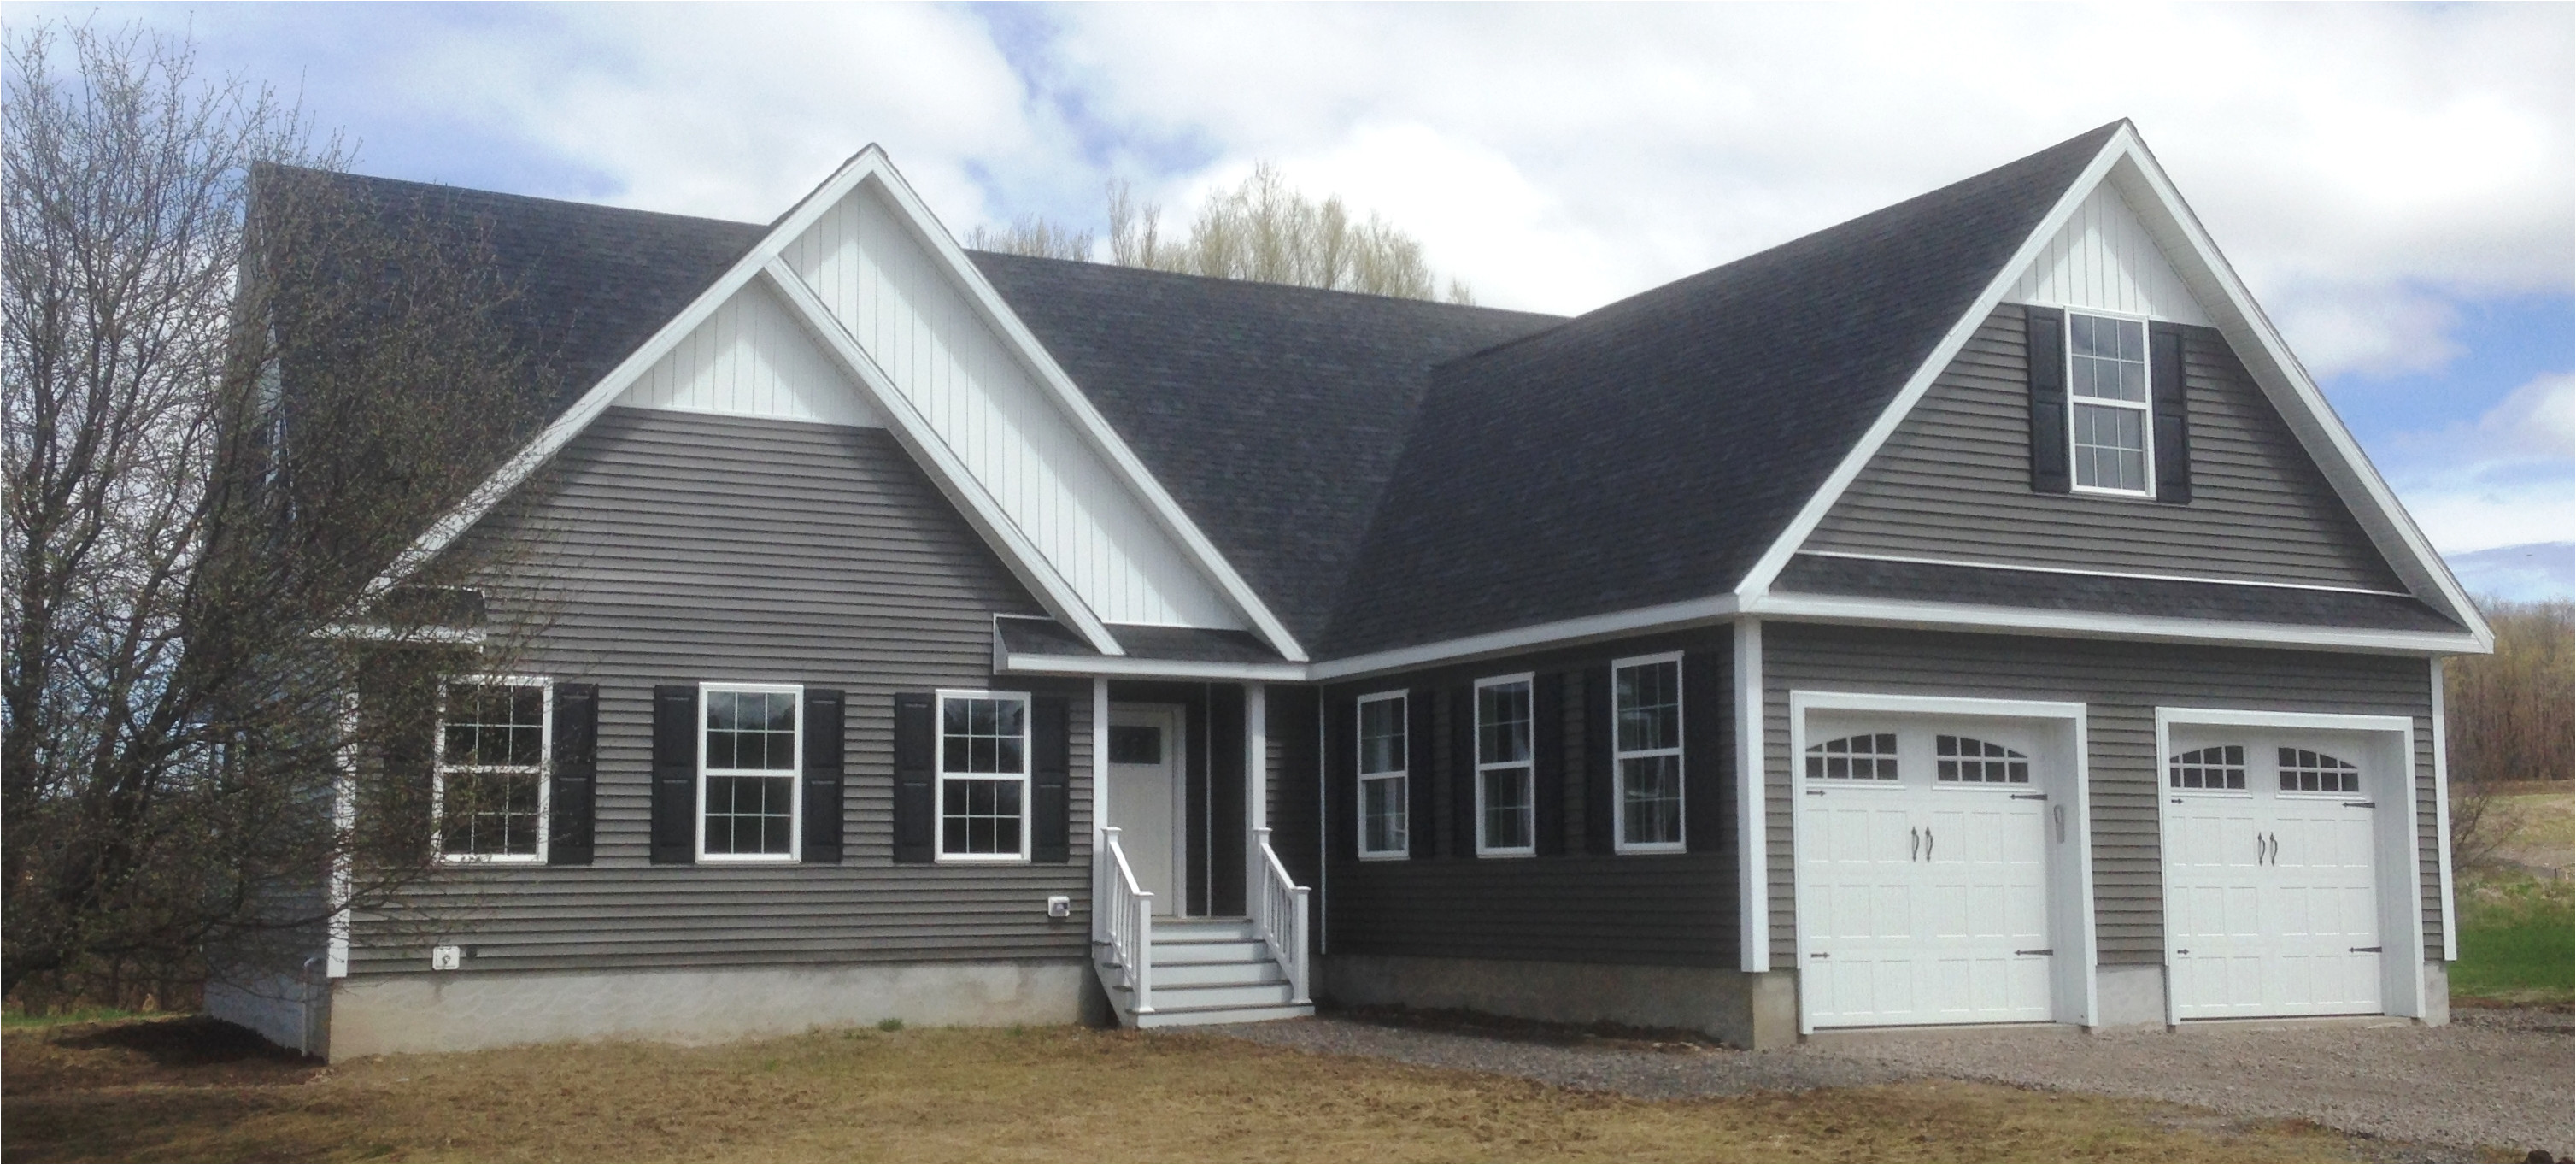 Mobile Homes for Rent to Own In Maine Our Model Homes In Richfield